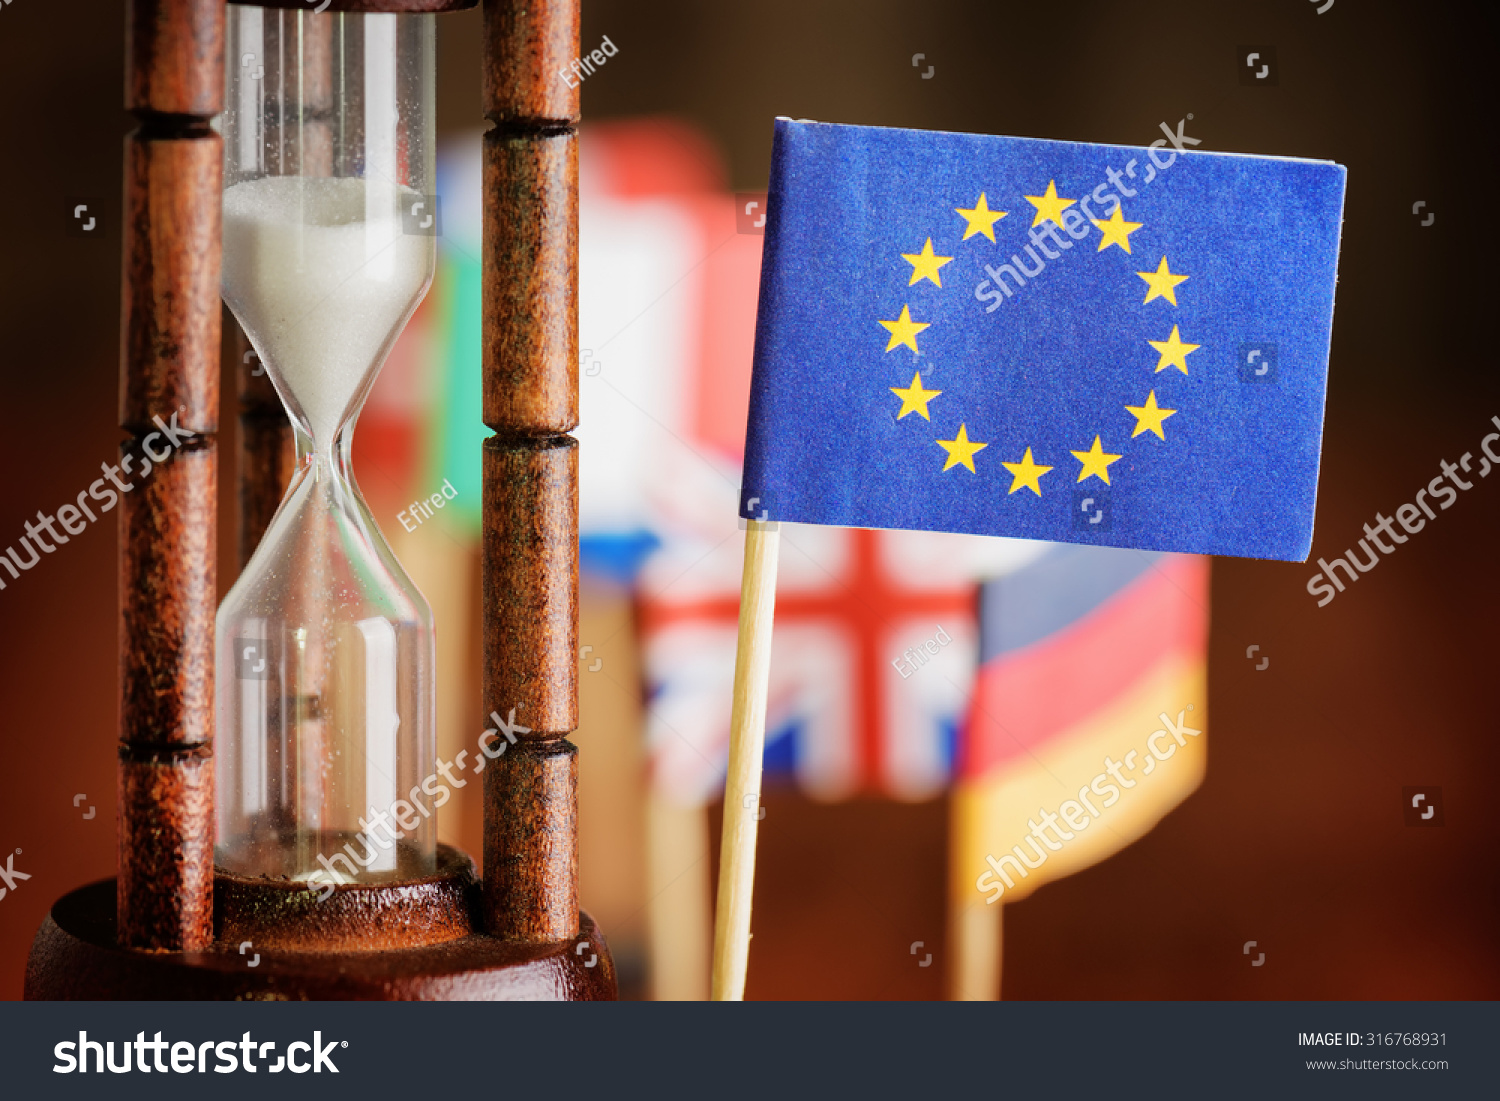 Political concept with flag of the European Union (EU). Time is running out. Closeup view of hourglass and flag of the European Union (EU). Flags of European countries in background. #316768931